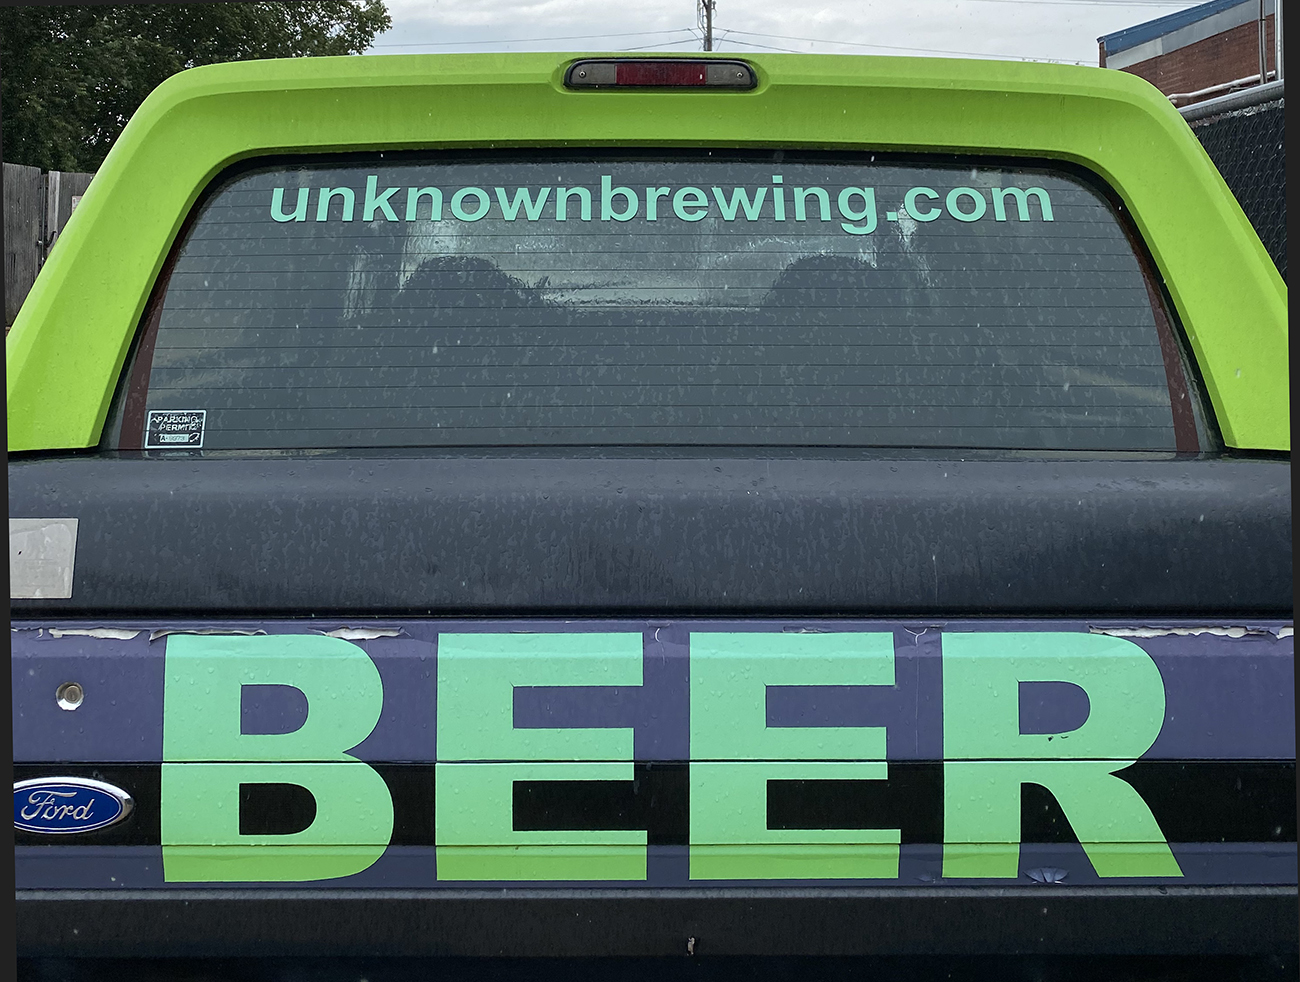 Unknown Brewing is giving up beer — but not before blowing up some stuff one more time